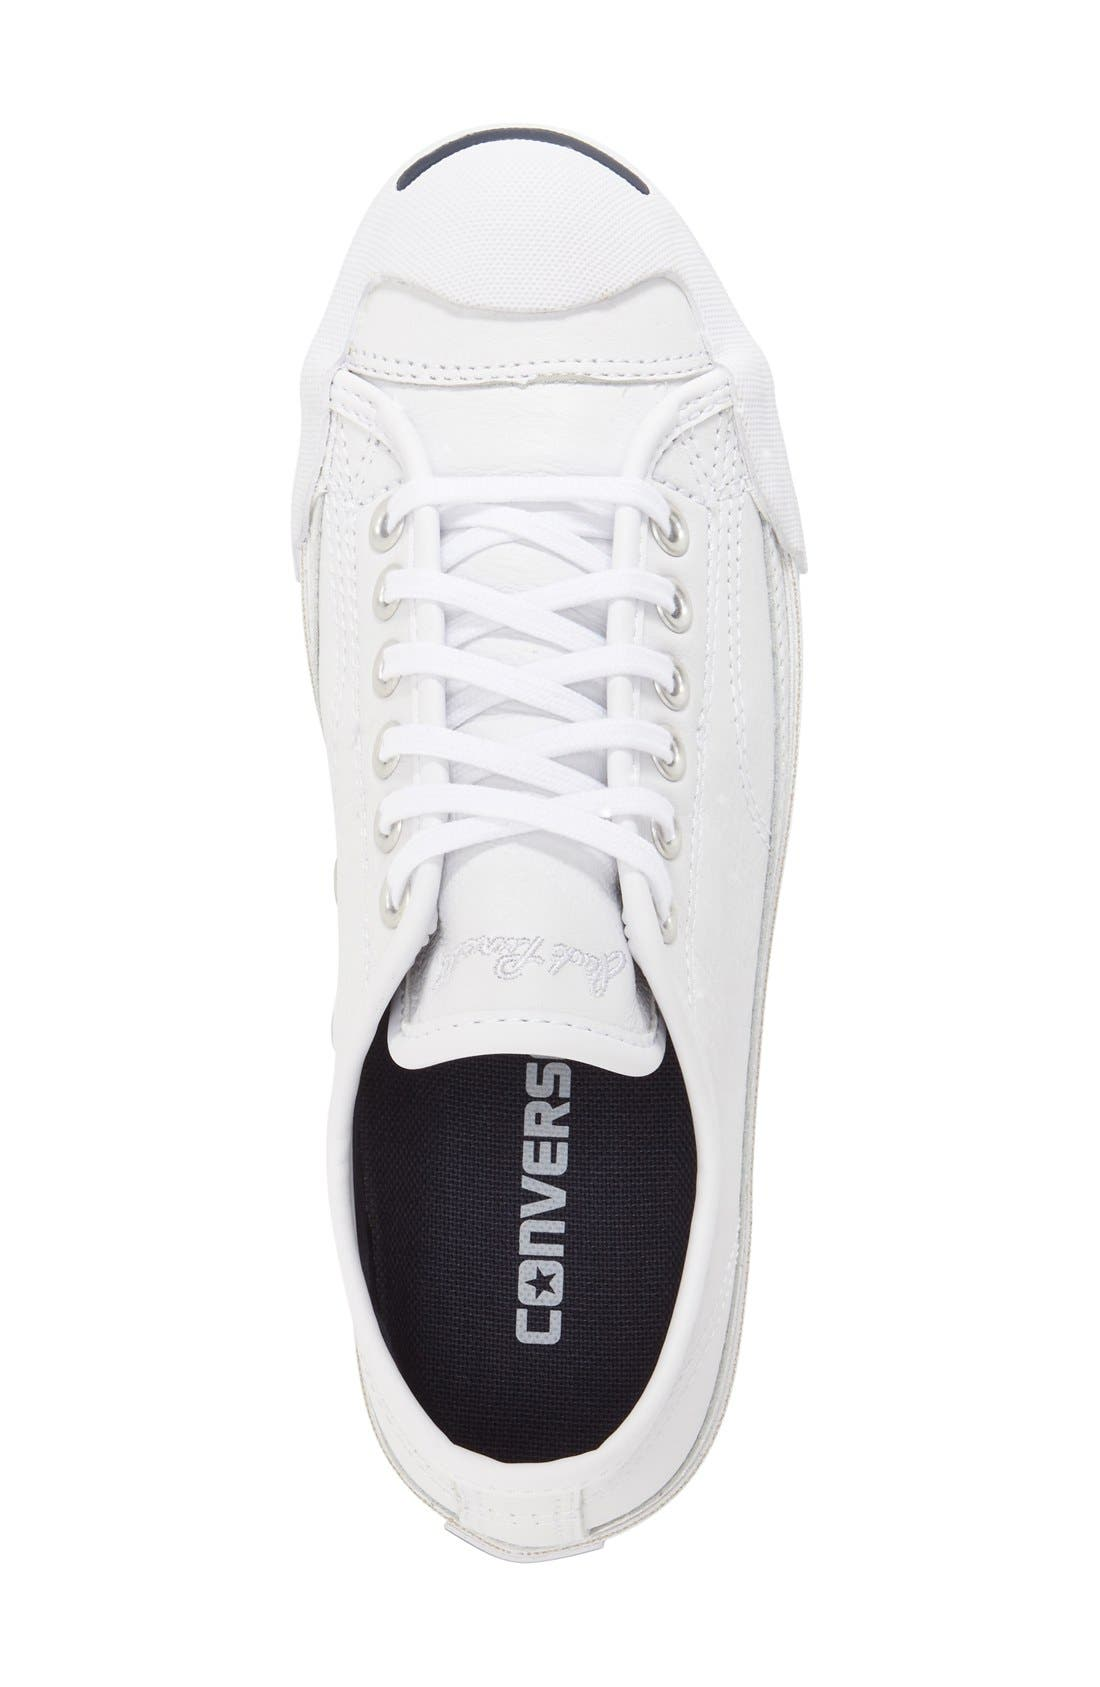 Alternate Image 3  - Converse 'Jack Purcell' Low Top Sneaker (Women)